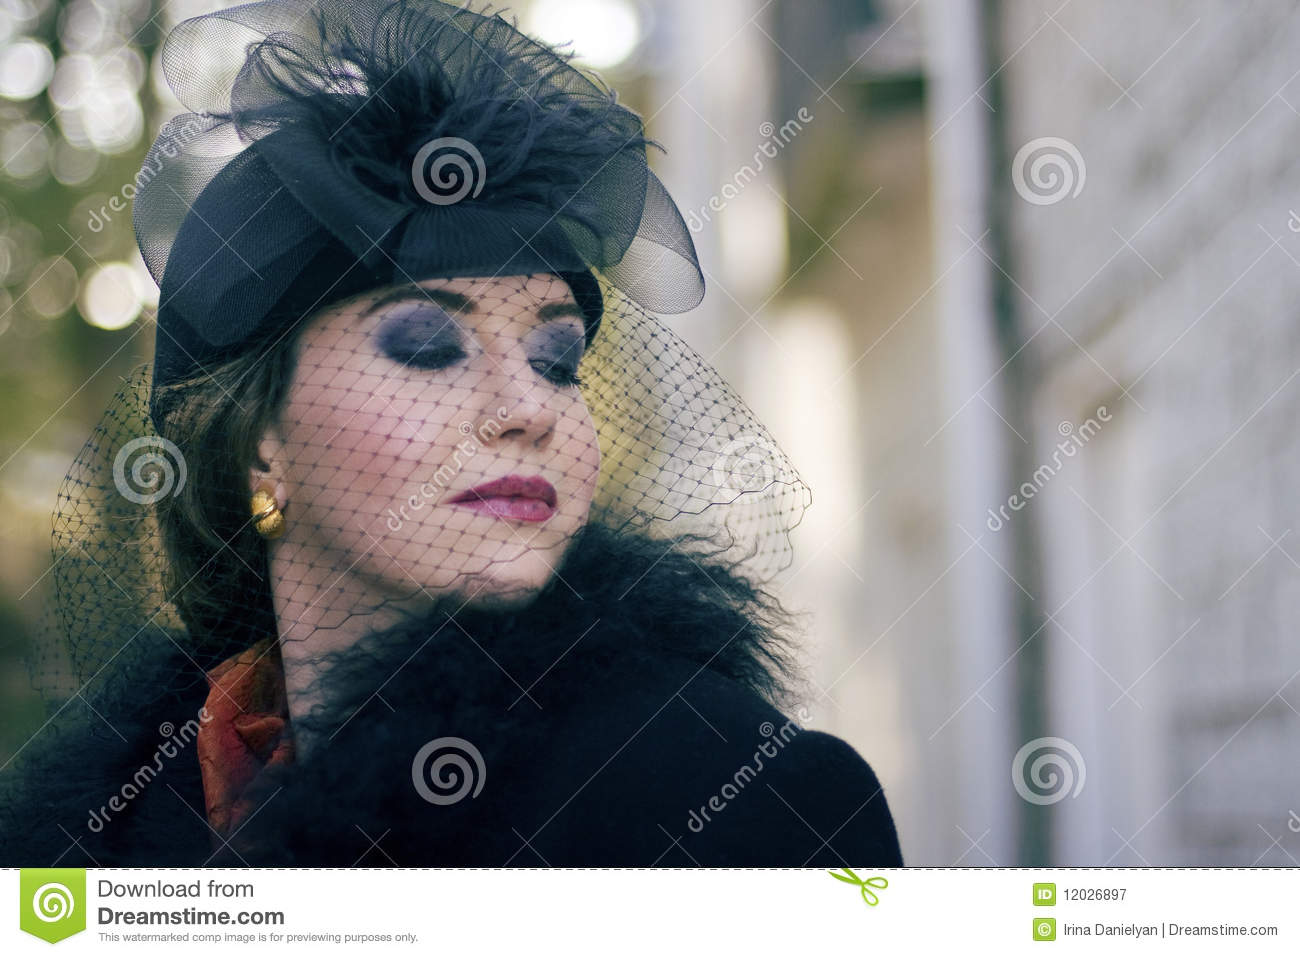 Woman Wearing A Vintage Hat With Veil Stock Image - Image of shot ... 32d421d511d